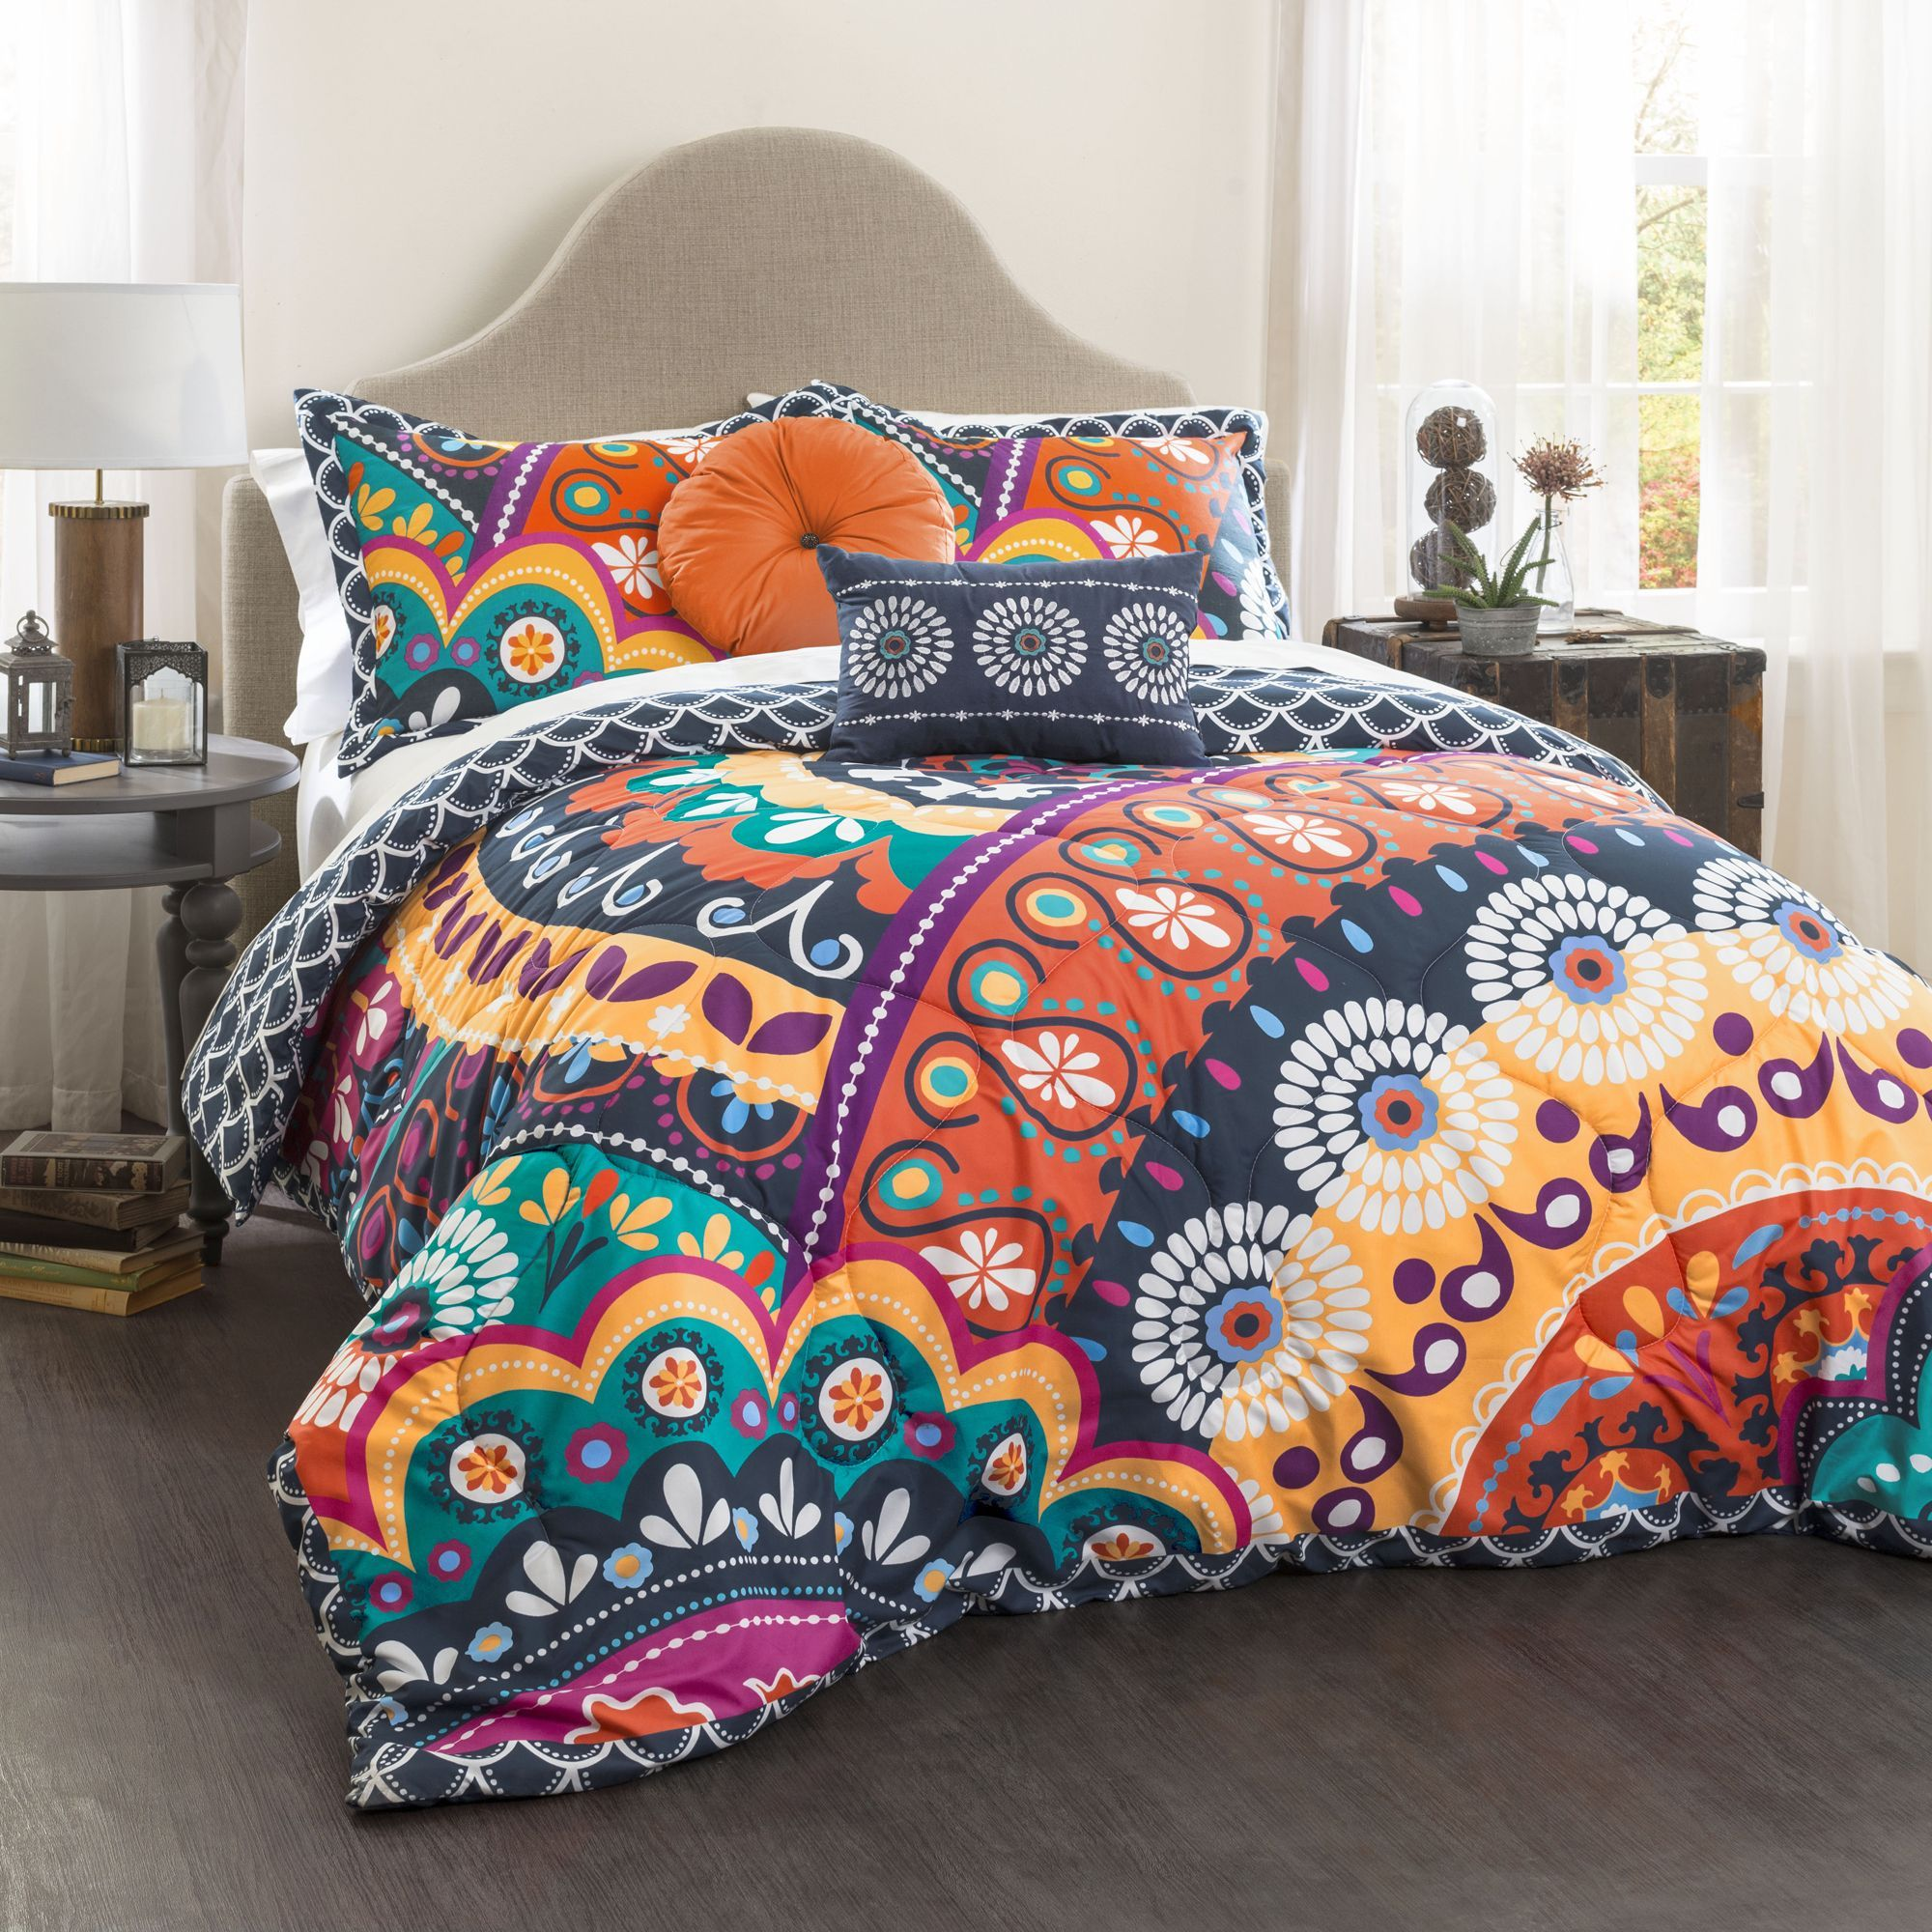 bedding detail textile nantong sale buy sets product for colorful luxury bed comforter